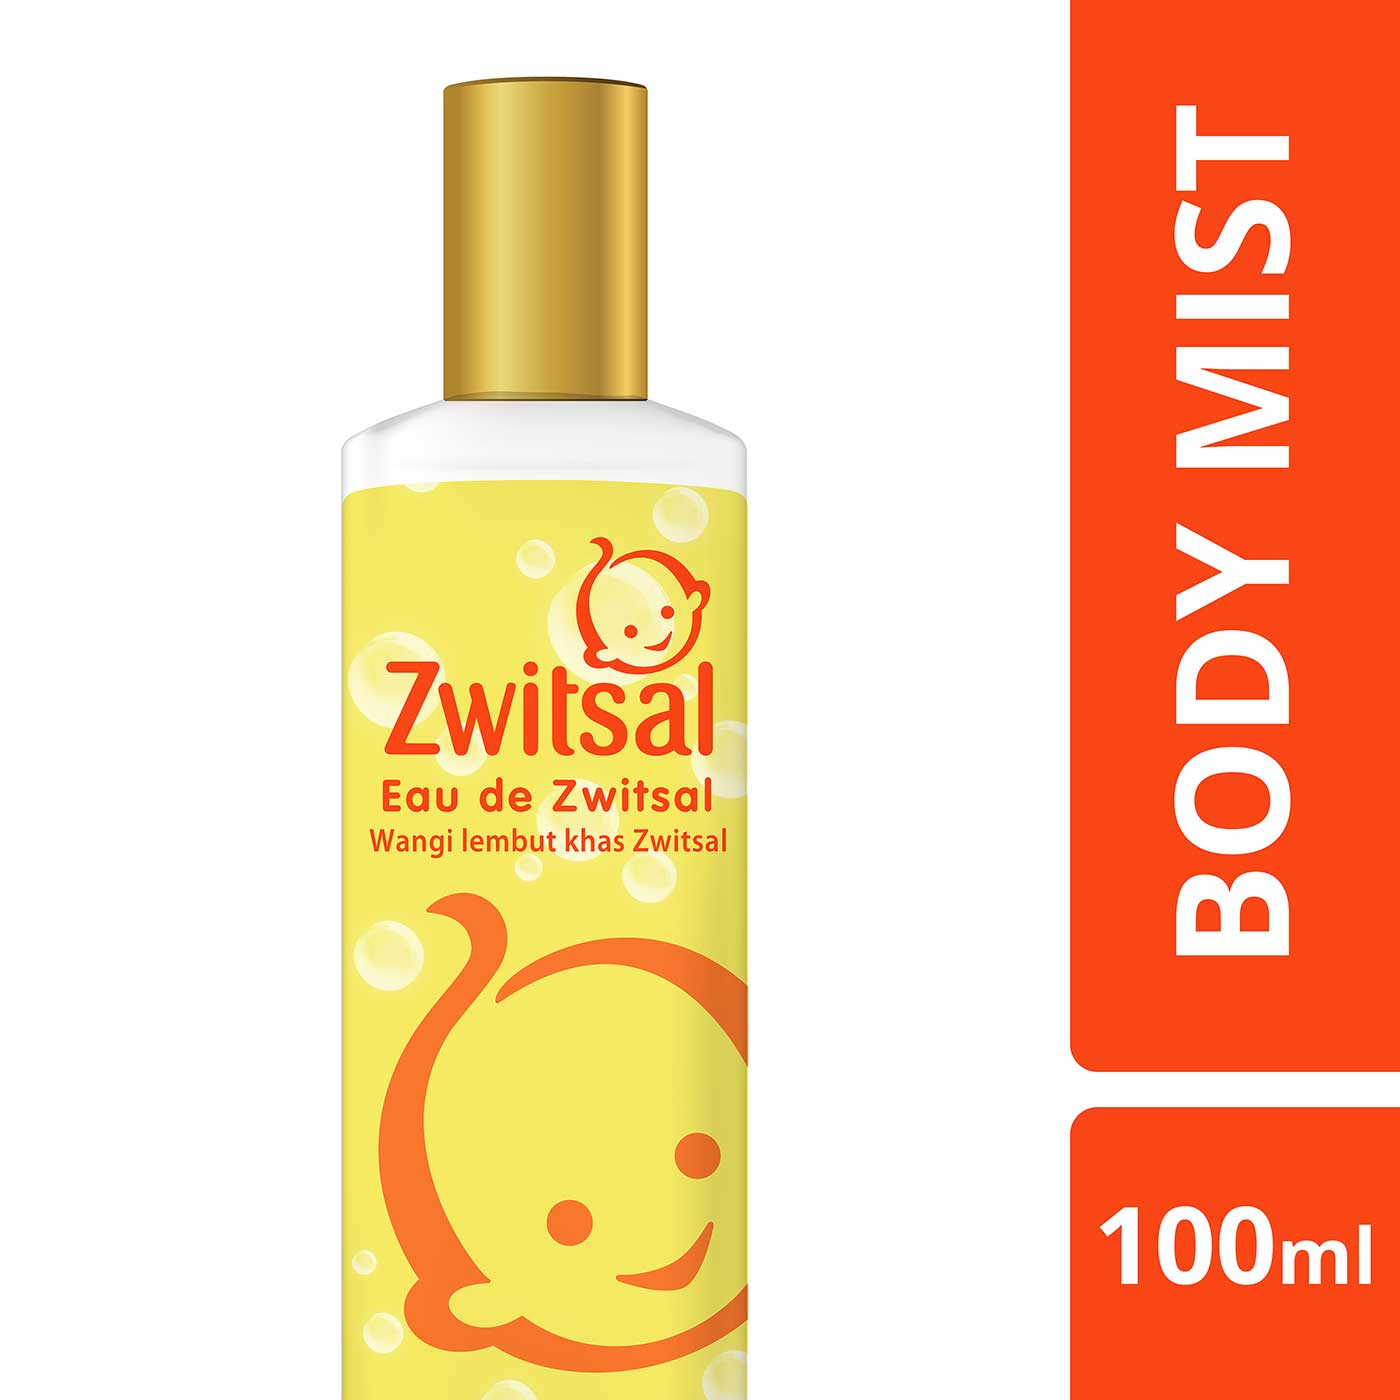 Zwitsal Eau De Toilette Body Mist 100ml